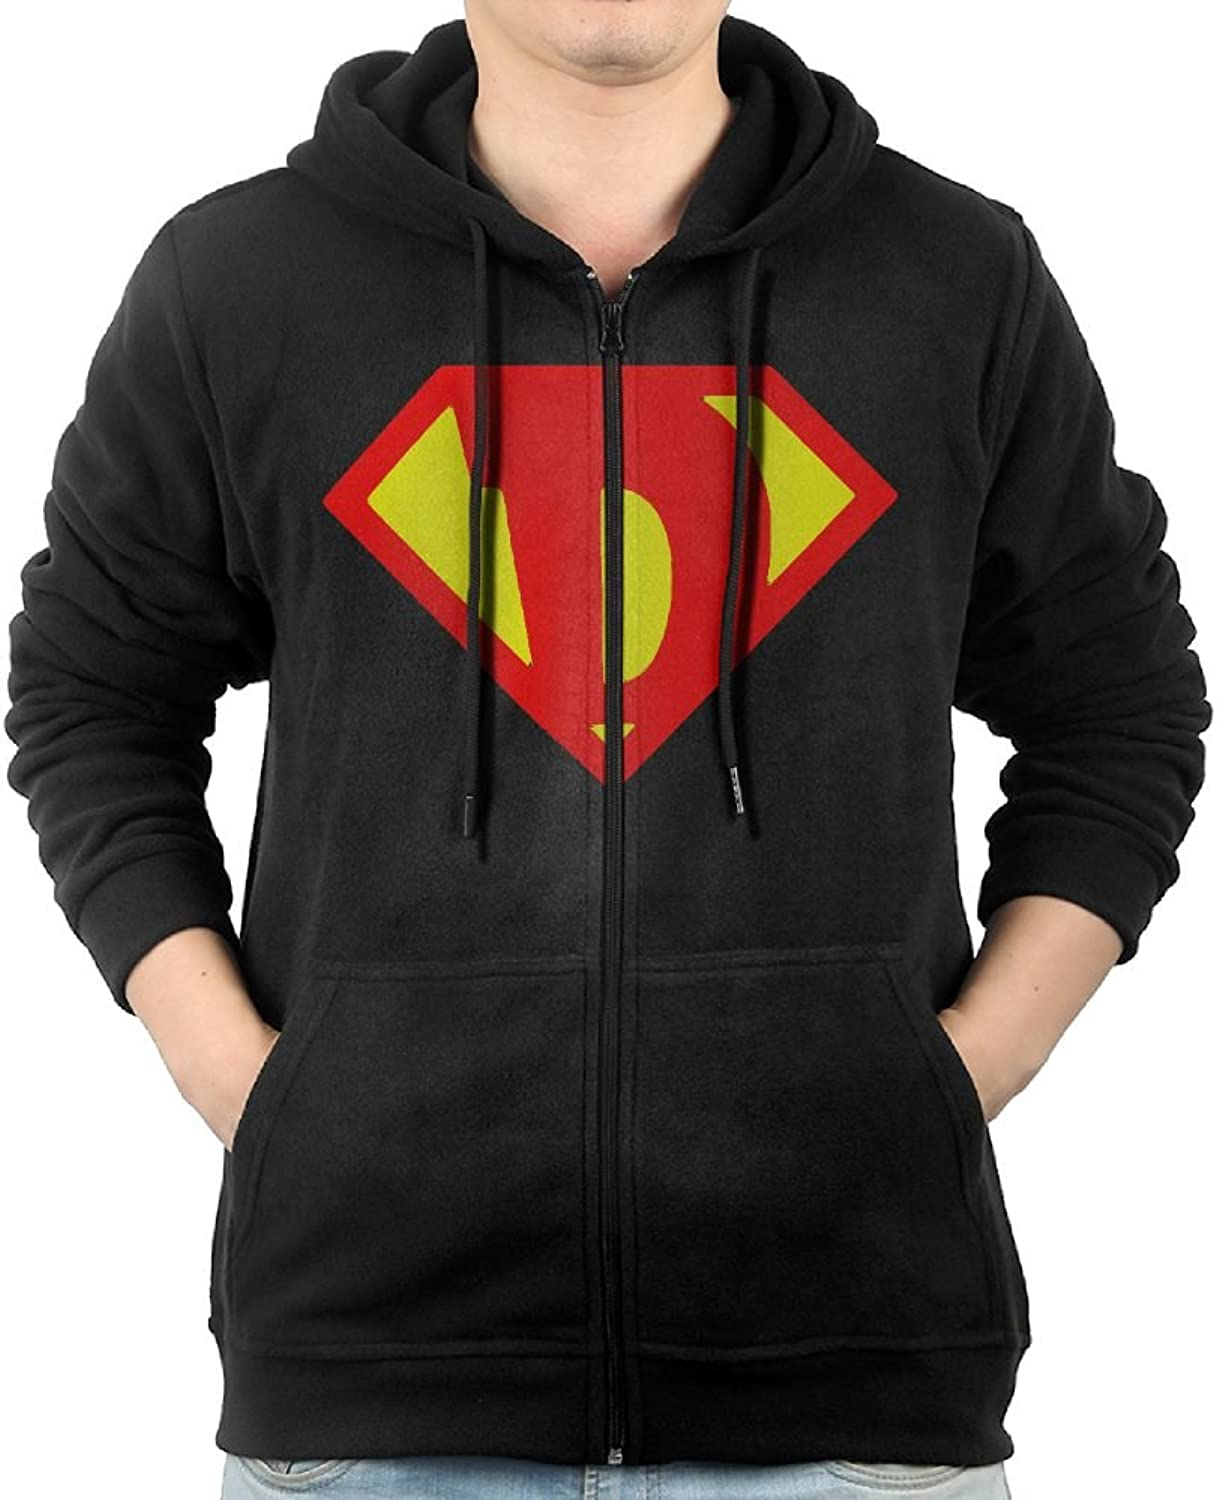 Super Cartoon Diamond Sweater Shirt Zipper Jacket Breathable Hoodie For Mens Fit Jogging Black